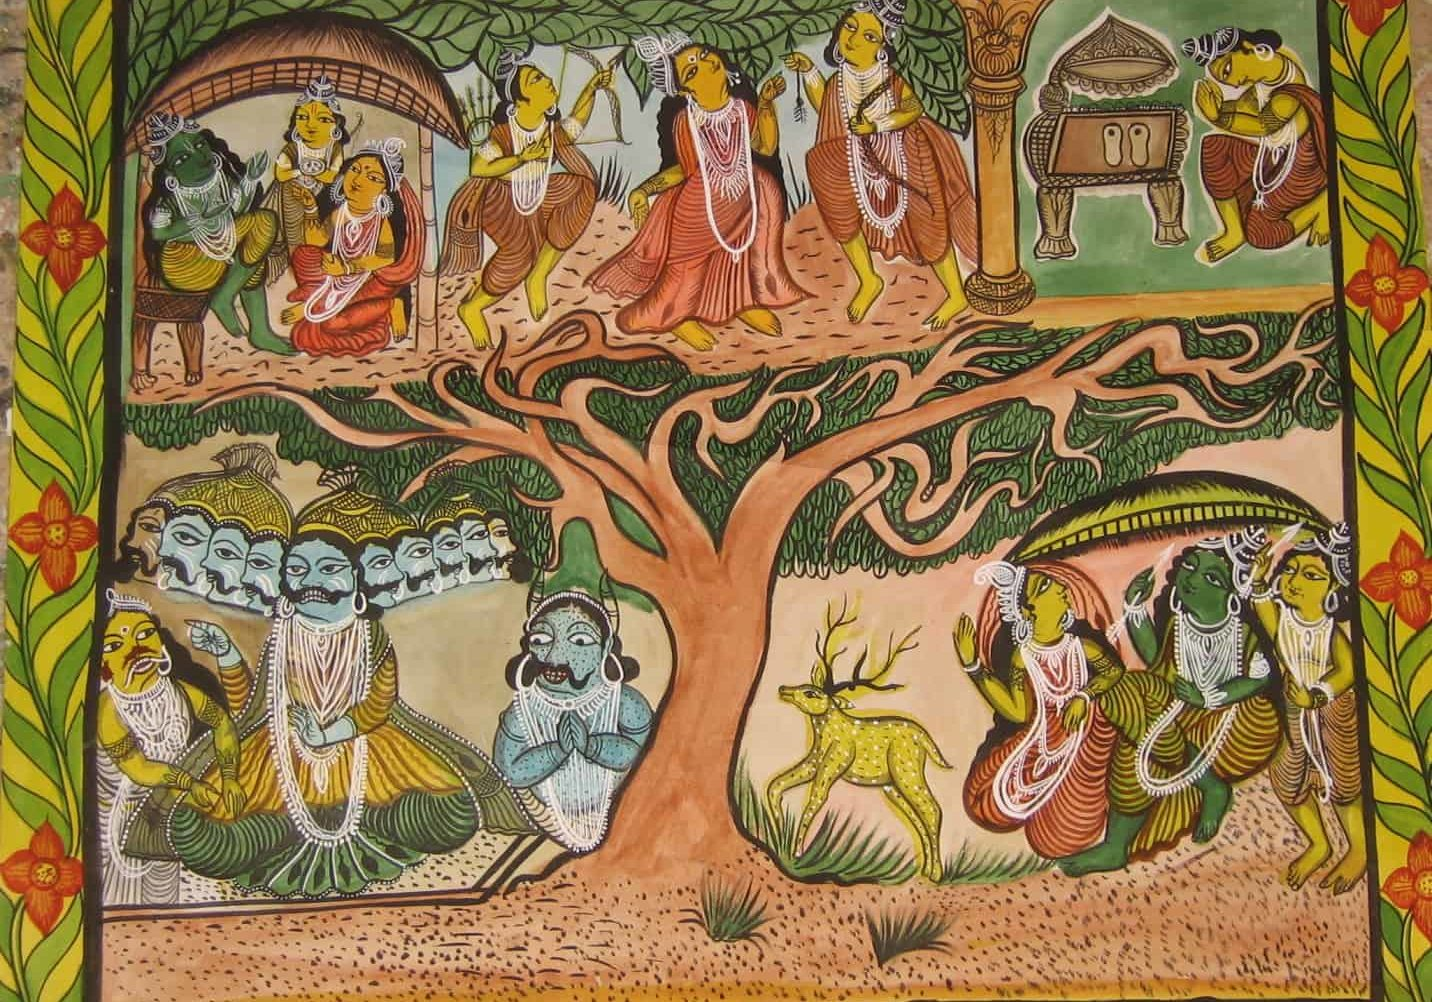 detail of a scroll - Baku Chitrakar, West Bengal